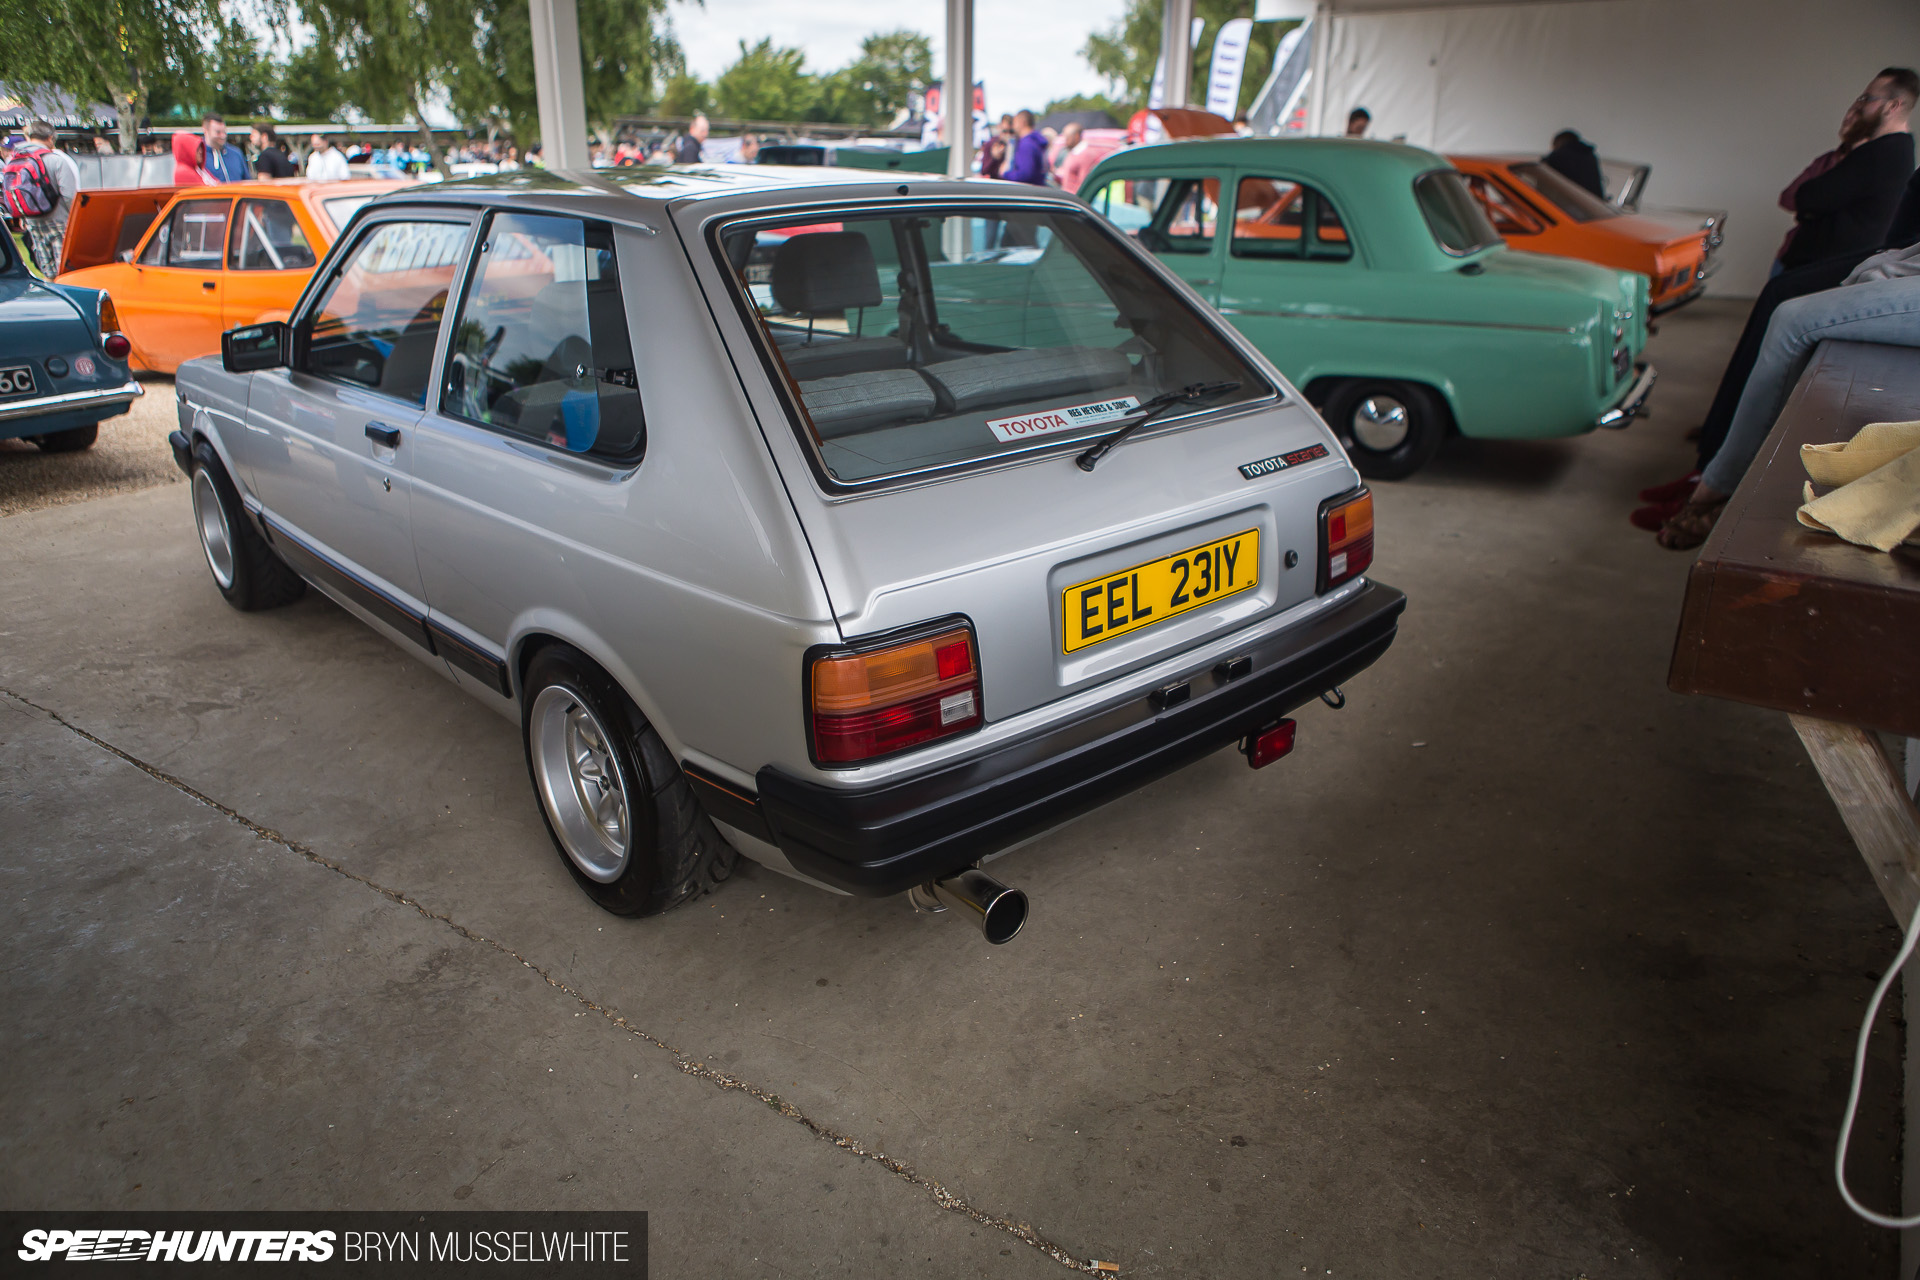 I Caught You Sleeping: A 440hp Starlet - Speedhunters